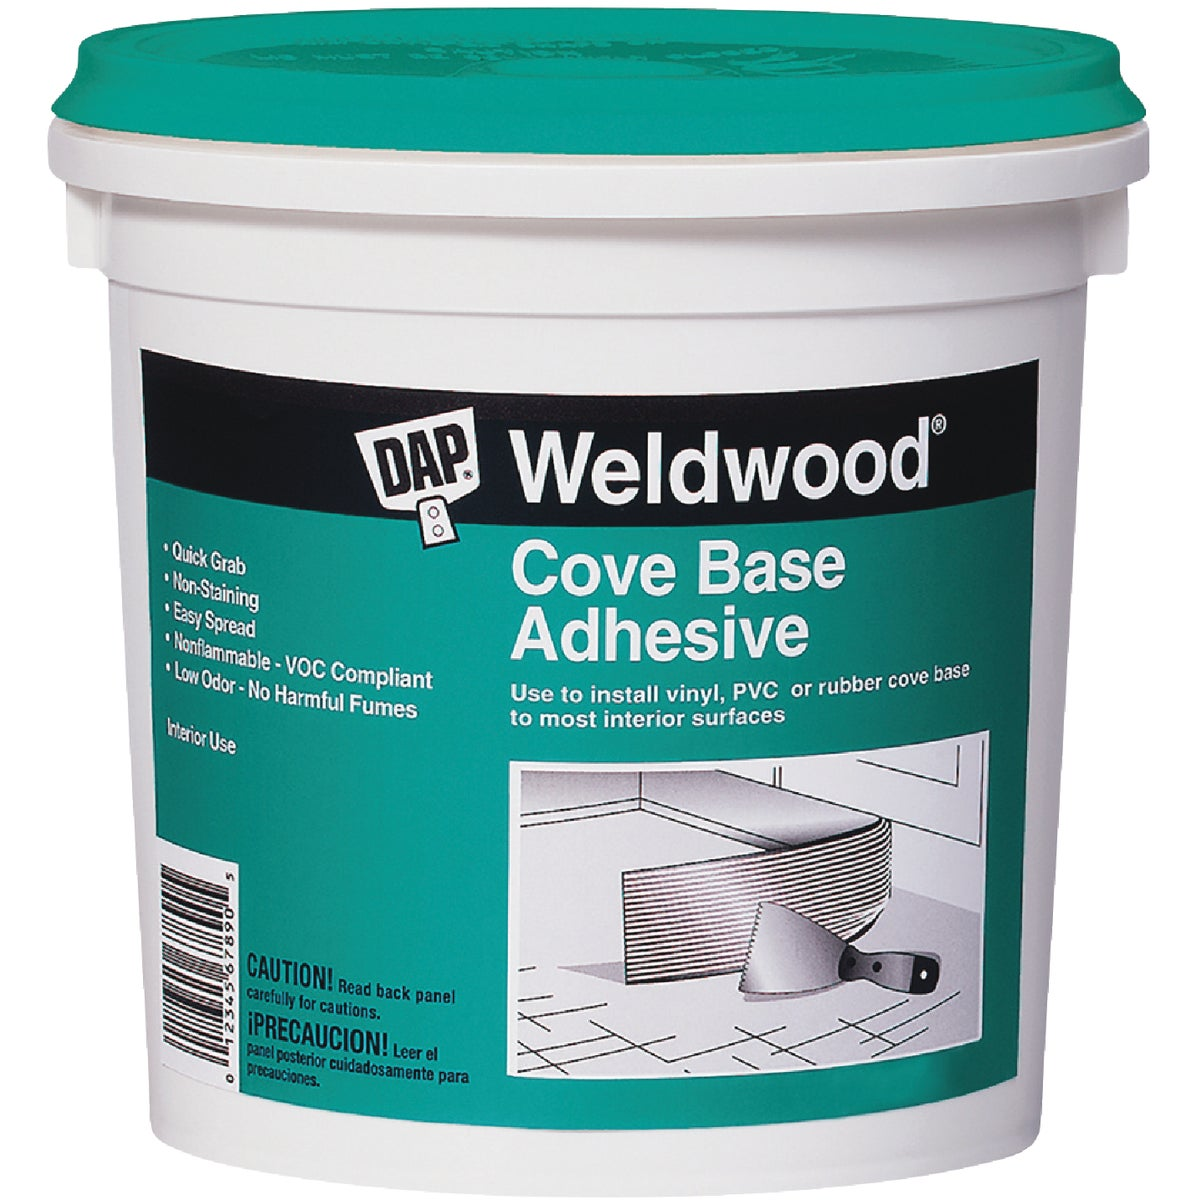 QT COVE BASE ADHESIVE - 25053 by Dap Inc